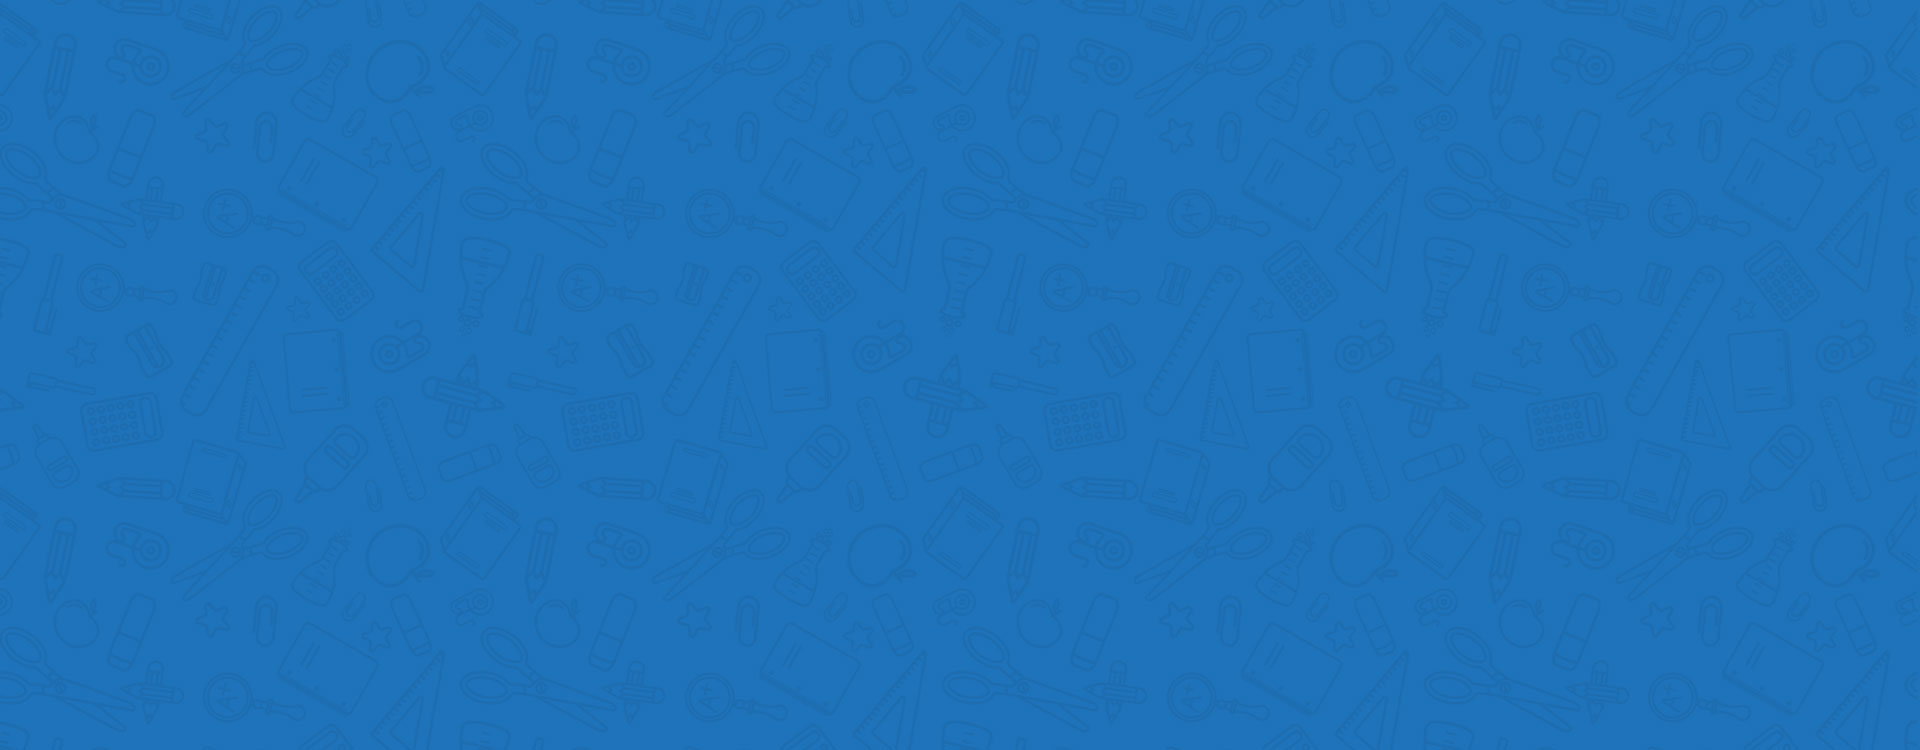 Blue school themed texture background image